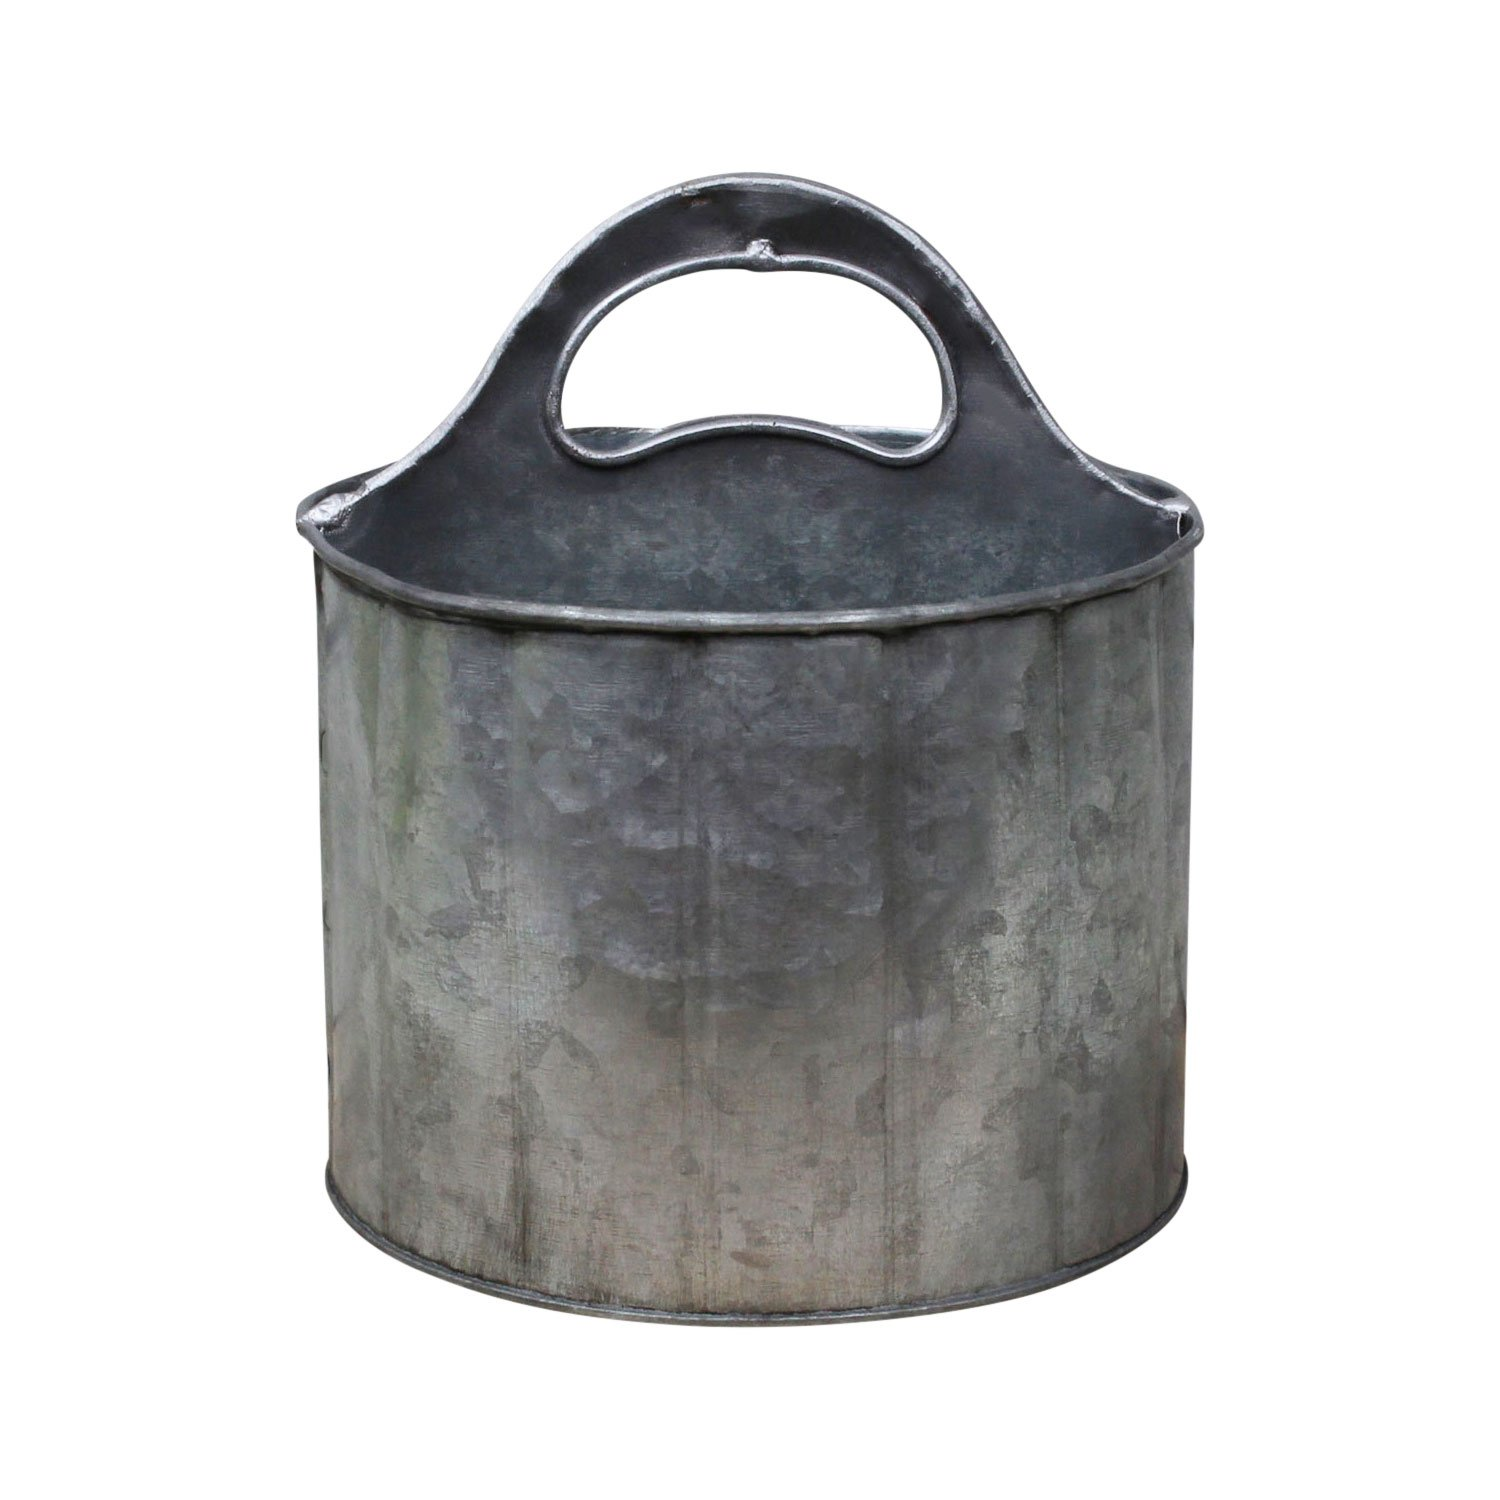 PD Home Round Metal Divided Caddy with Handle | Rustic Farmhouse Style by PD Home